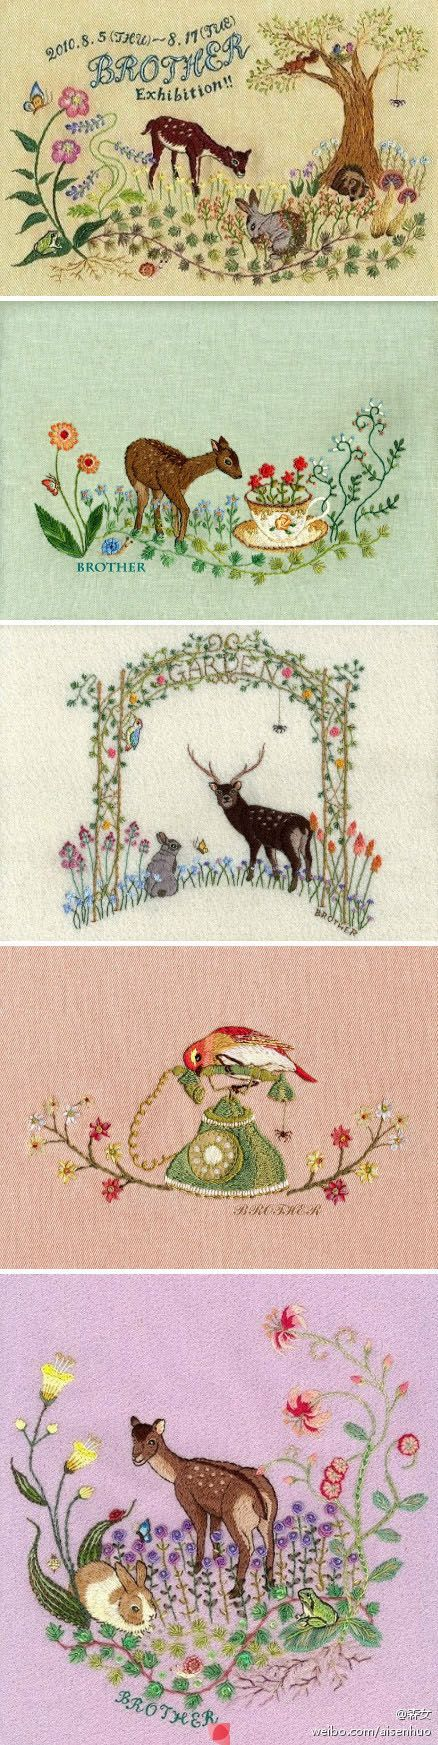 ♒ Enchanting Embroidery ♒ vintage woodland needlework